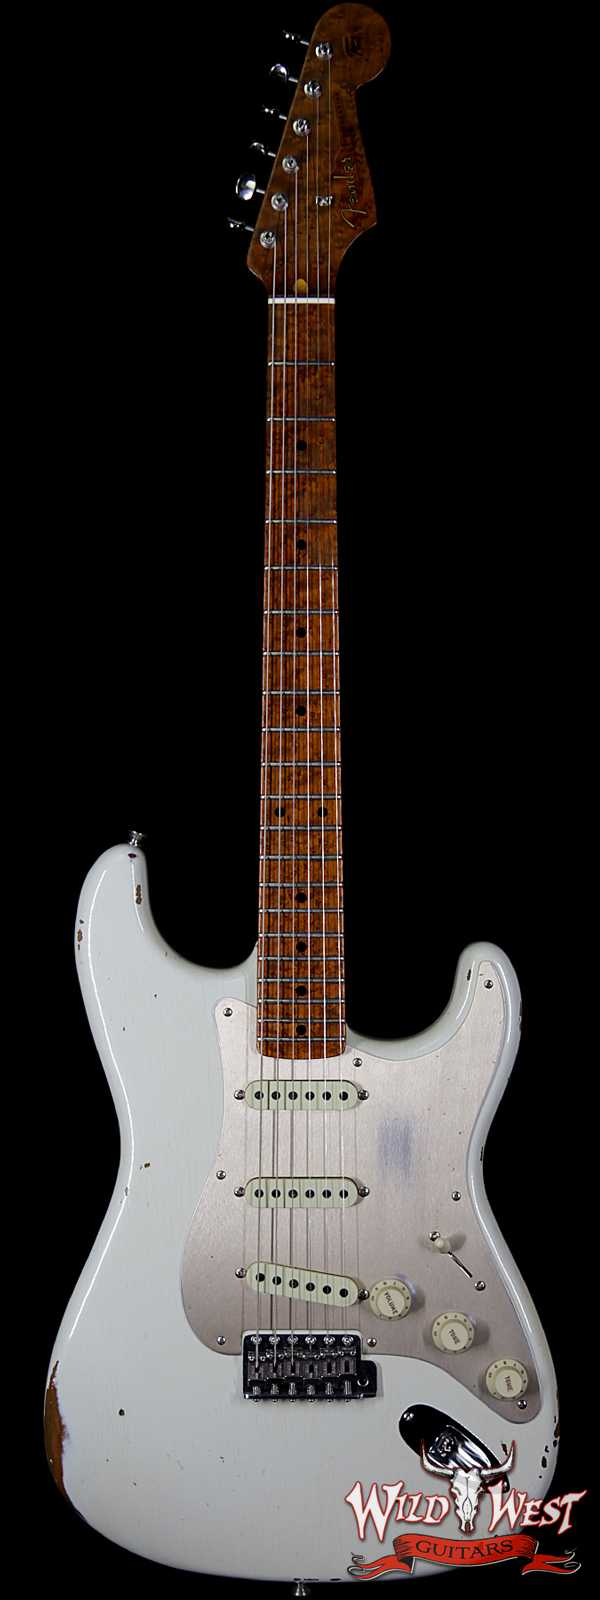 Fender Custom Shop NAMM Limited 1956 Roasted Stratocaster Relic Birdseye Maple Neck Olympic White